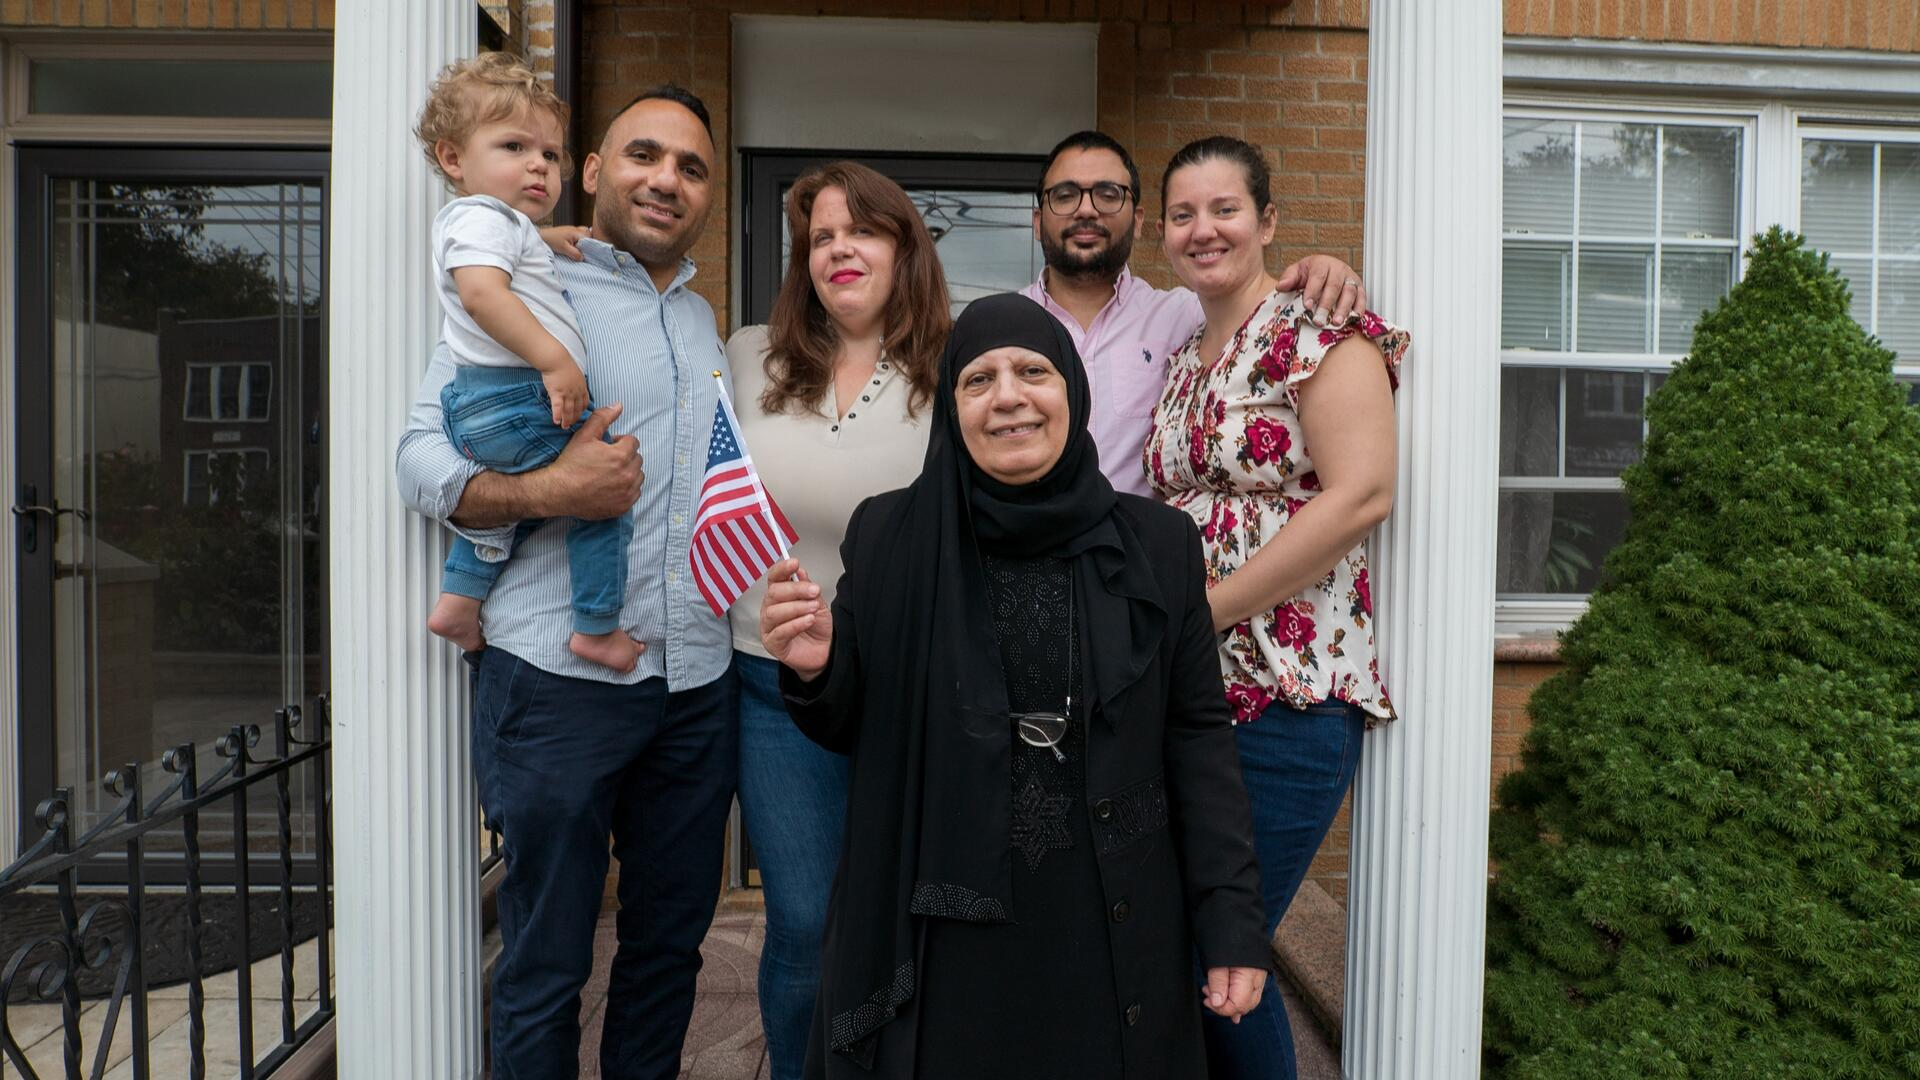 Maha al-Obaidi, a 66-year-old Iraqi woman, stands holding an American flag with her family on the porch of their home in New York City.